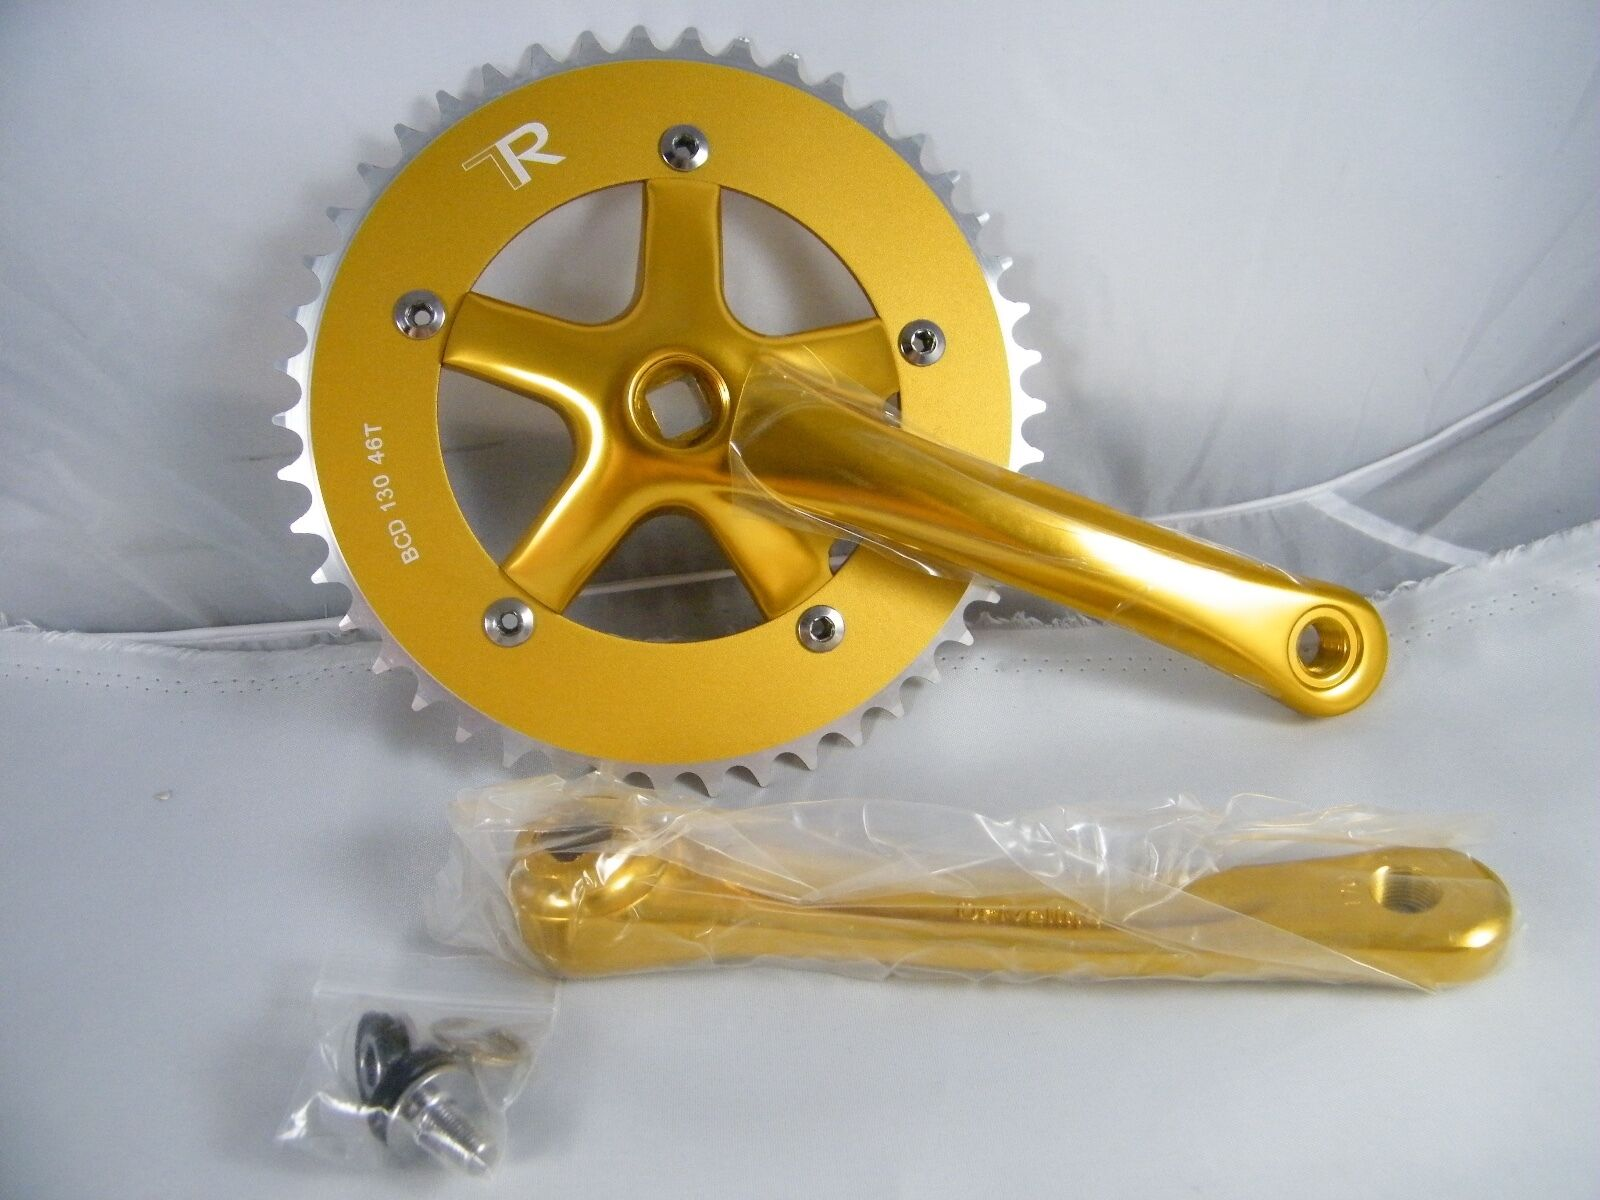 NEW  DRIVELINE CRANKSET TK13 170 MM gold  PART DL-TK-170-GD,  BCD 130  46T  buy cheap